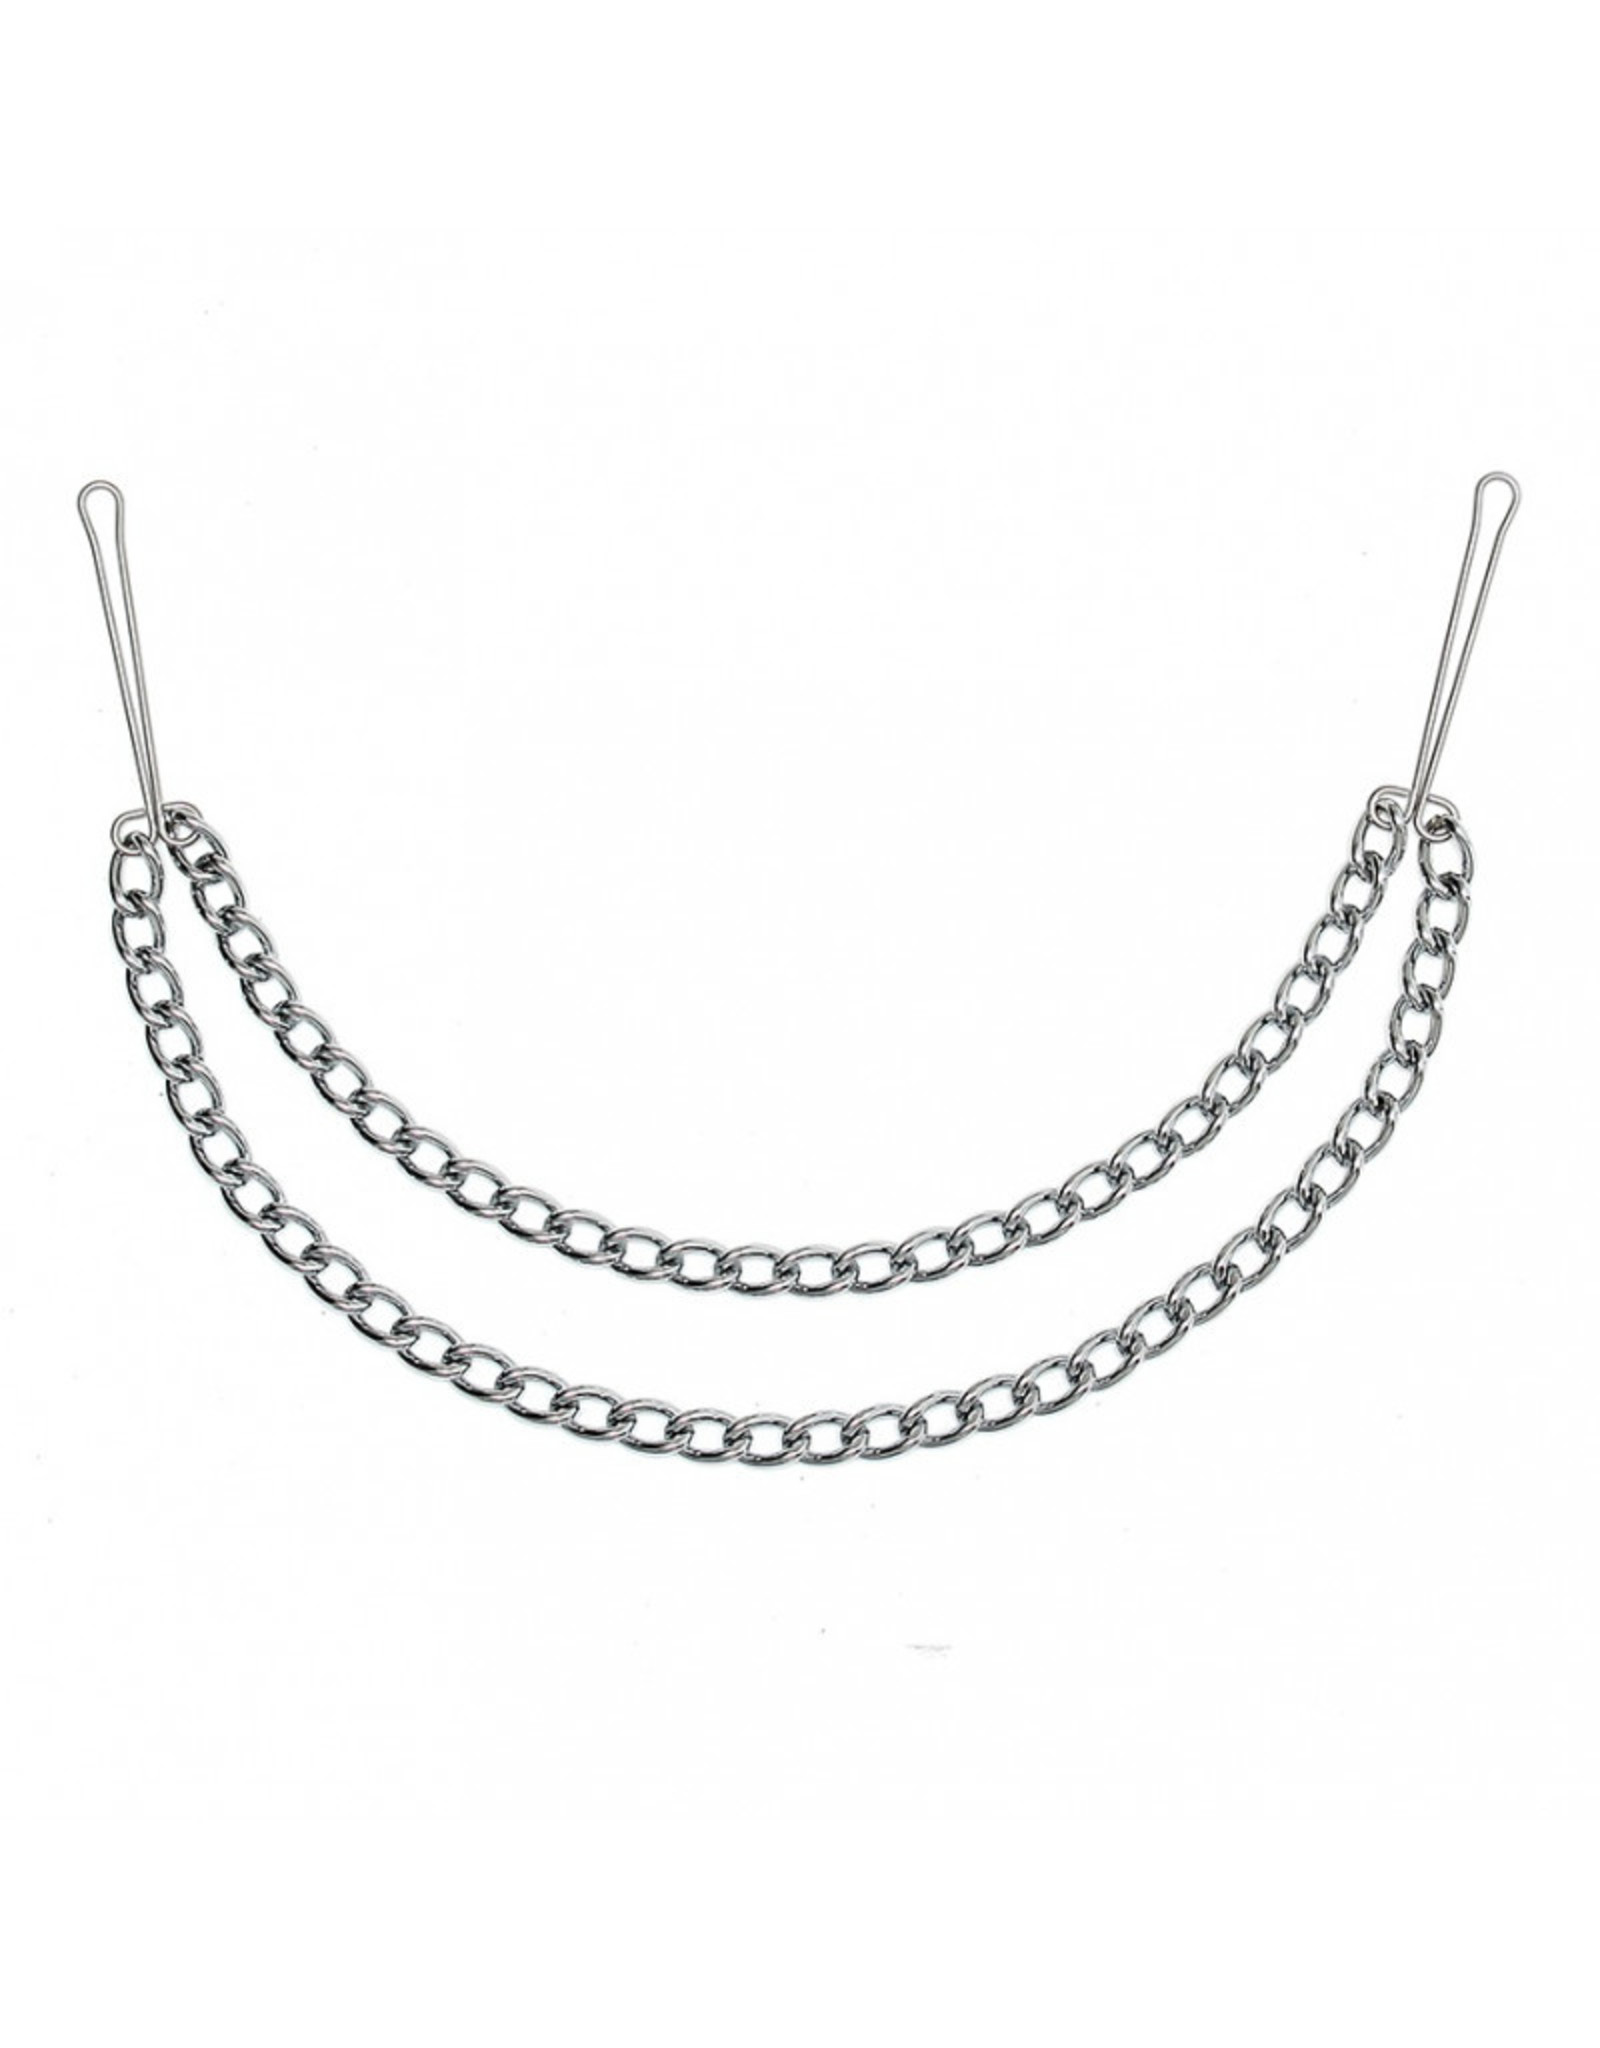 Nipple clamps with double chain